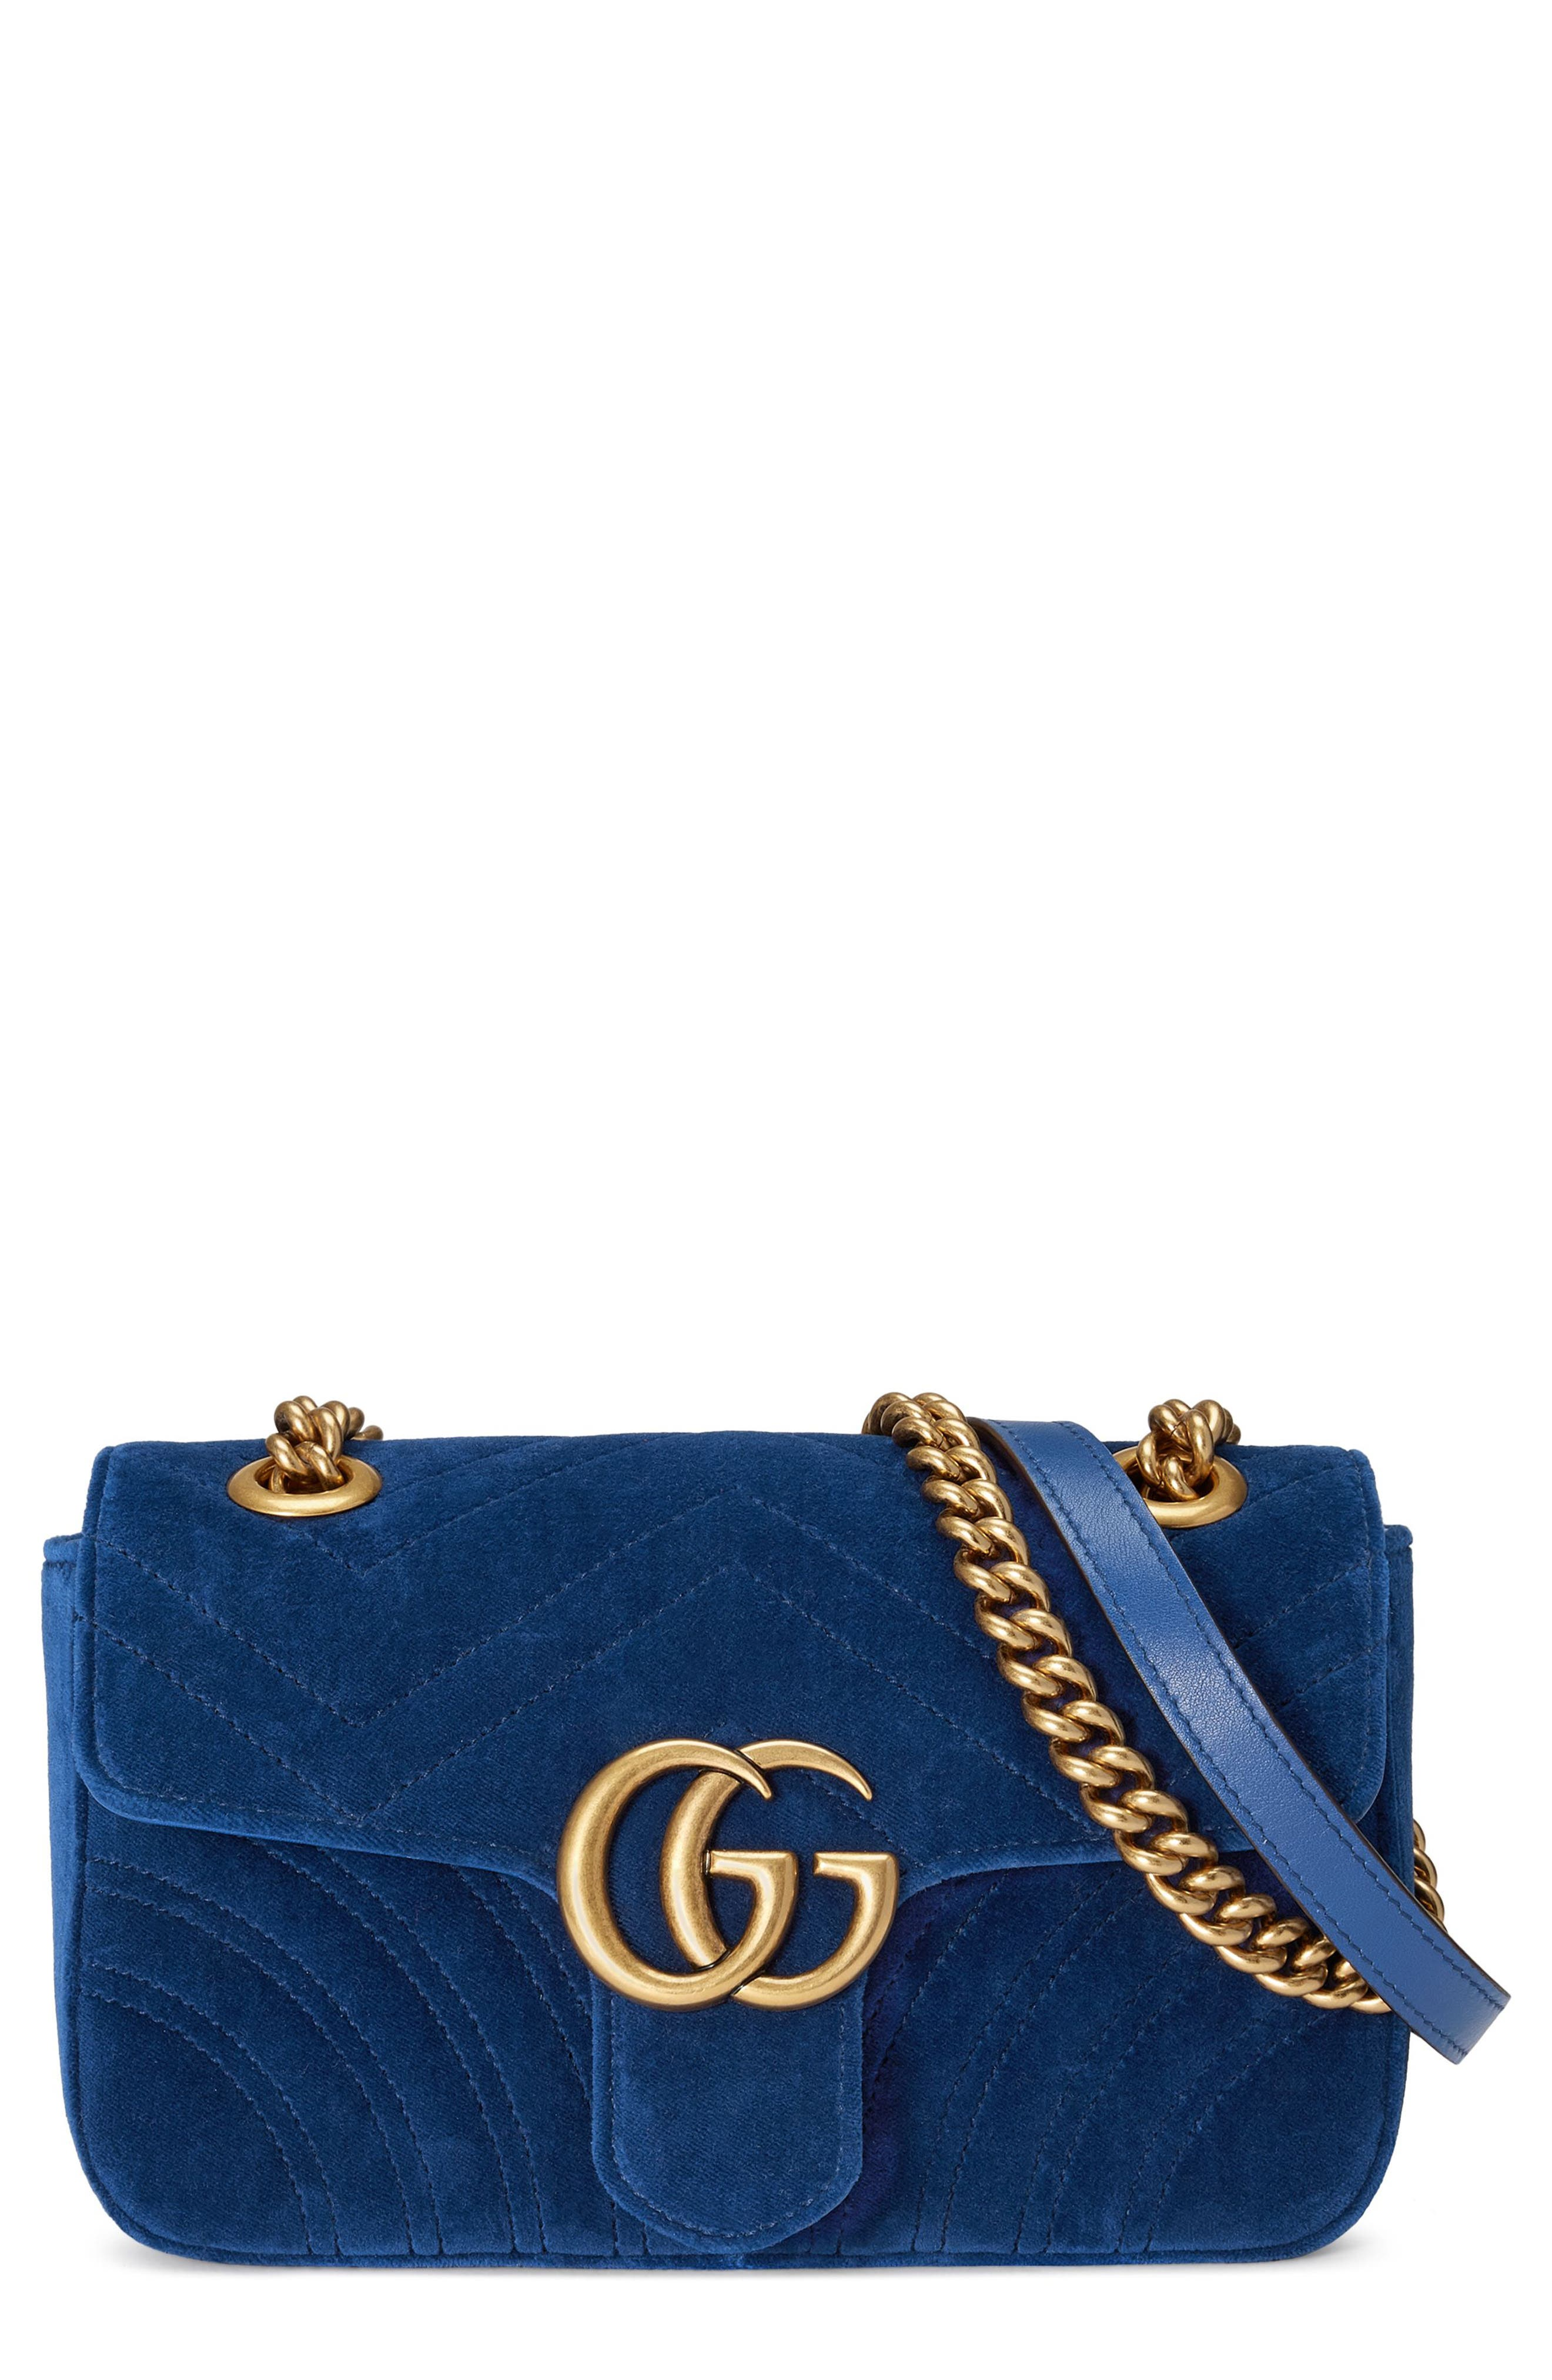 Small GG Marmont 2.0 Matelassé Velvet Shoulder Bag,                             Main thumbnail 1, color,                             COBALT